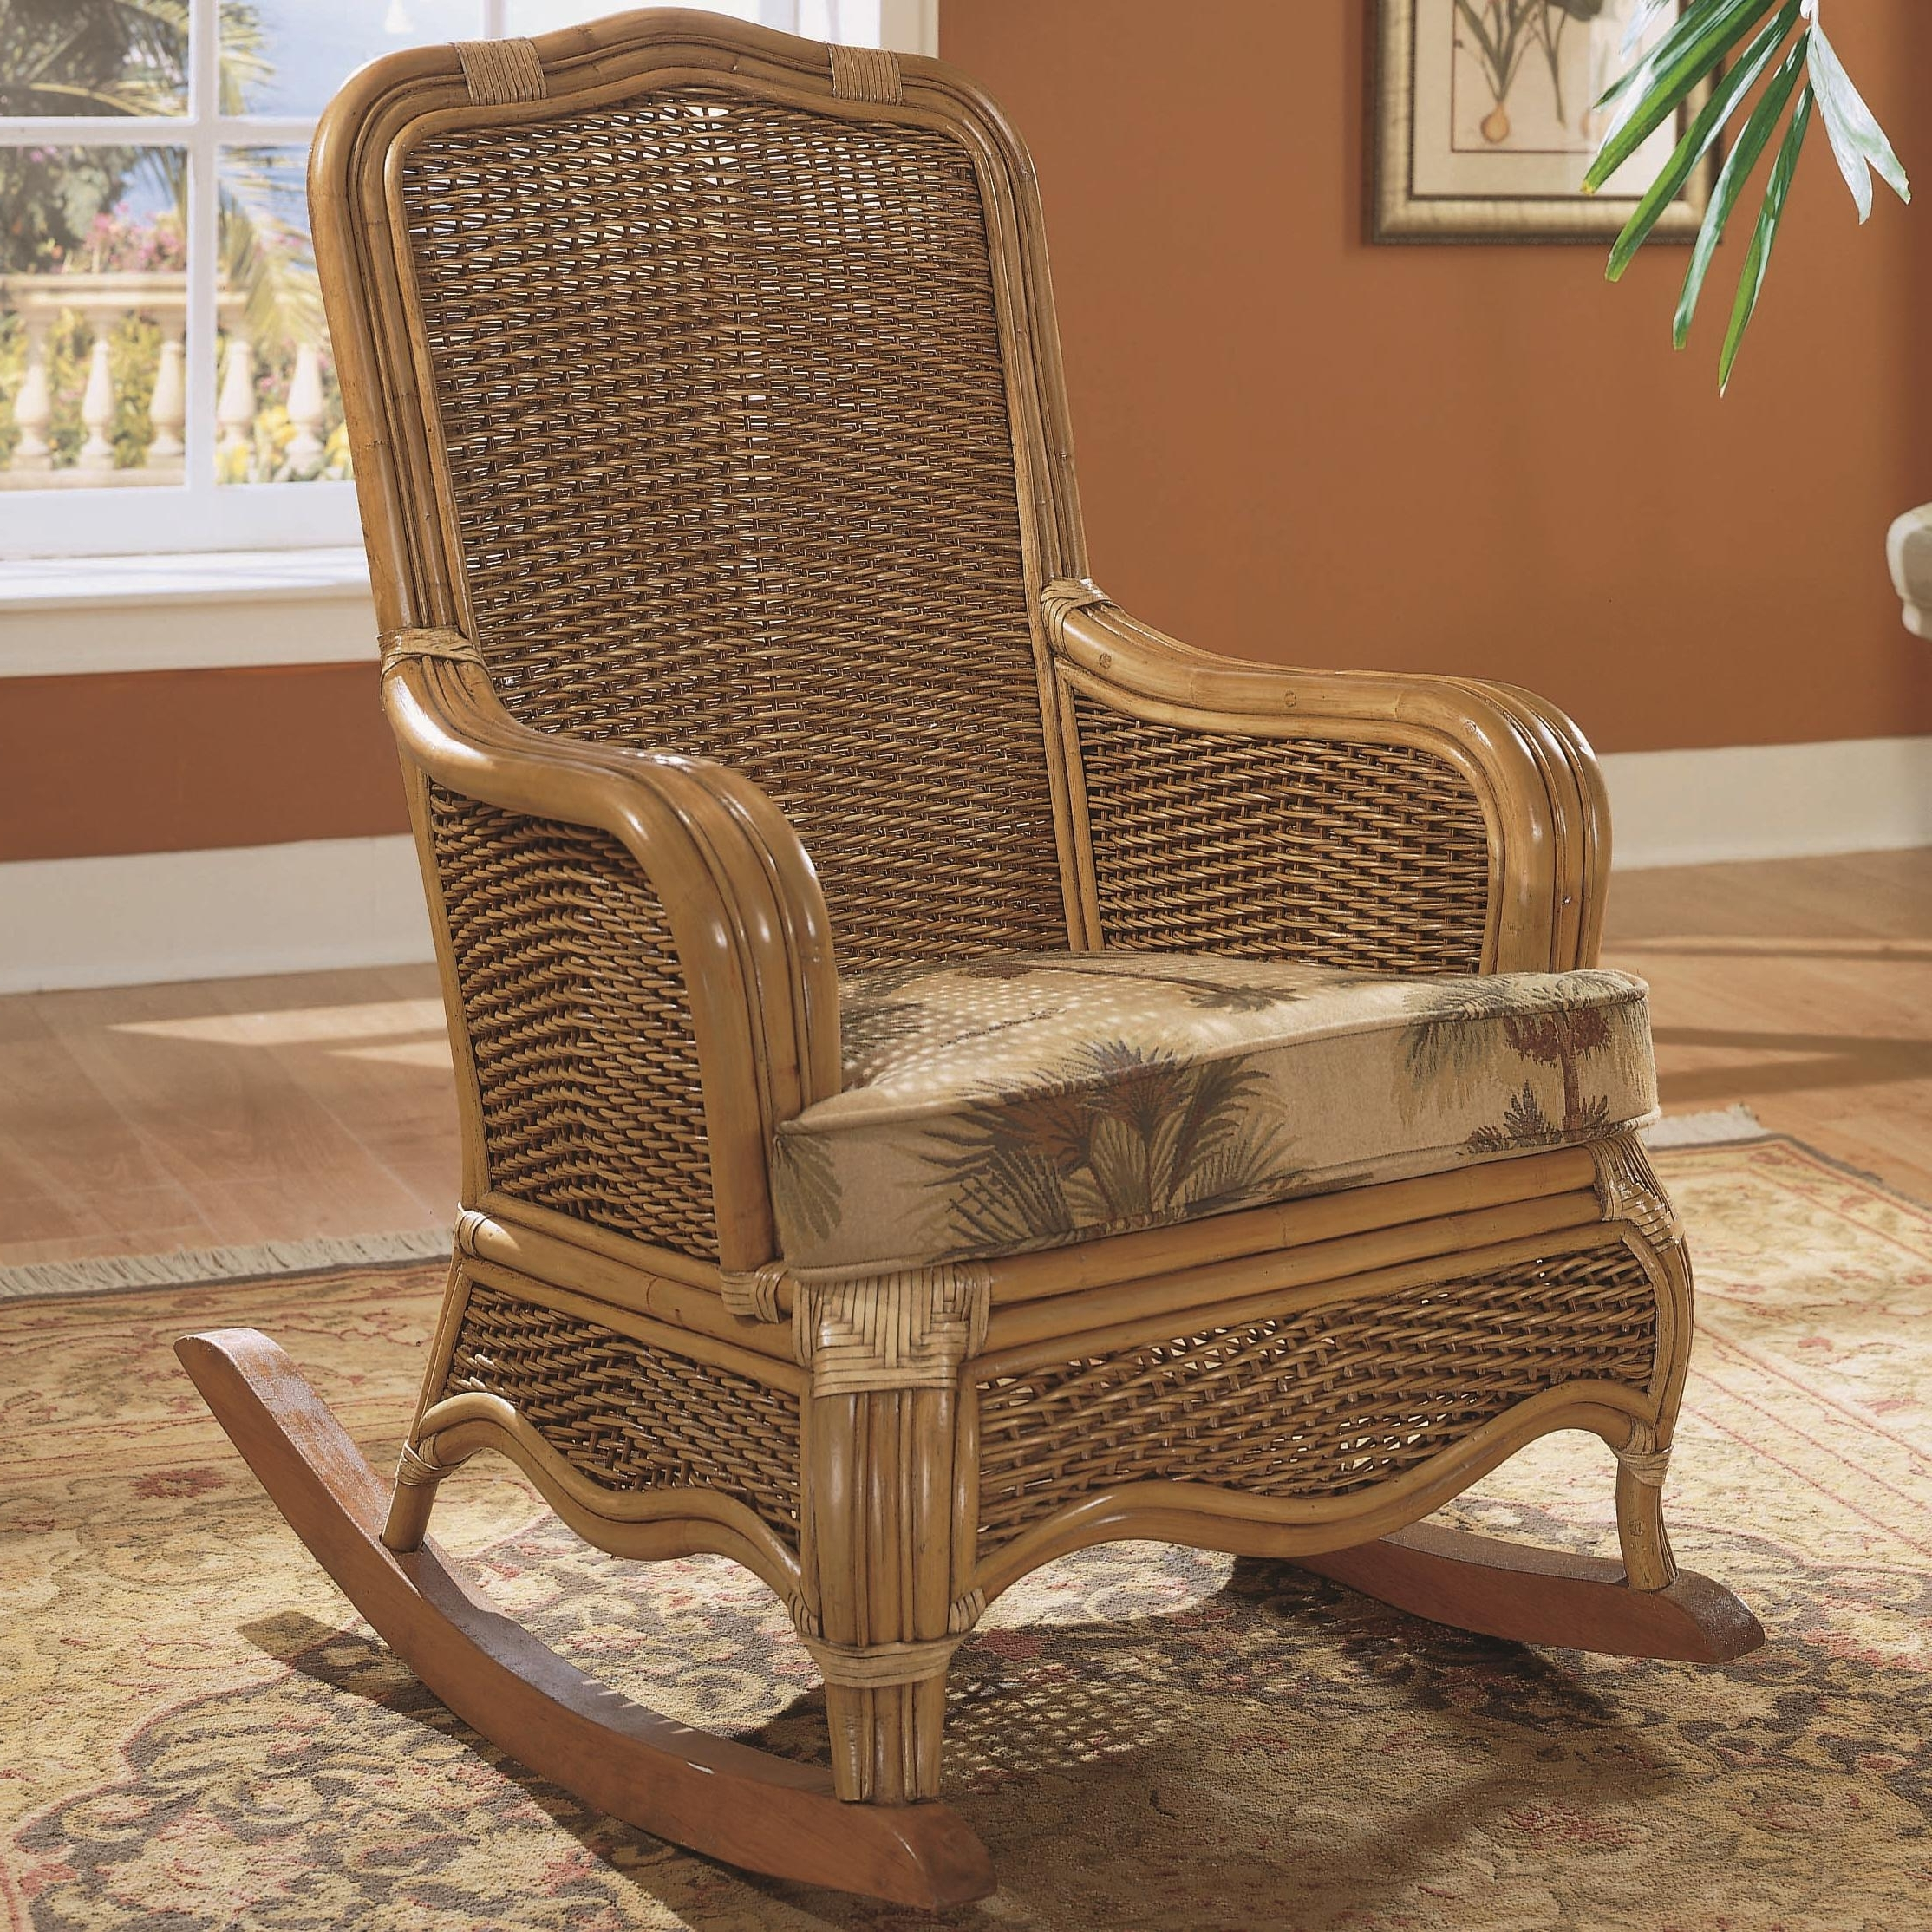 Braxton Culler Shorewood Tropical Rattan Rocking Chair With Loose Throughout Popular Wicker Rocking Chairs With Cushions (View 13 of 15)